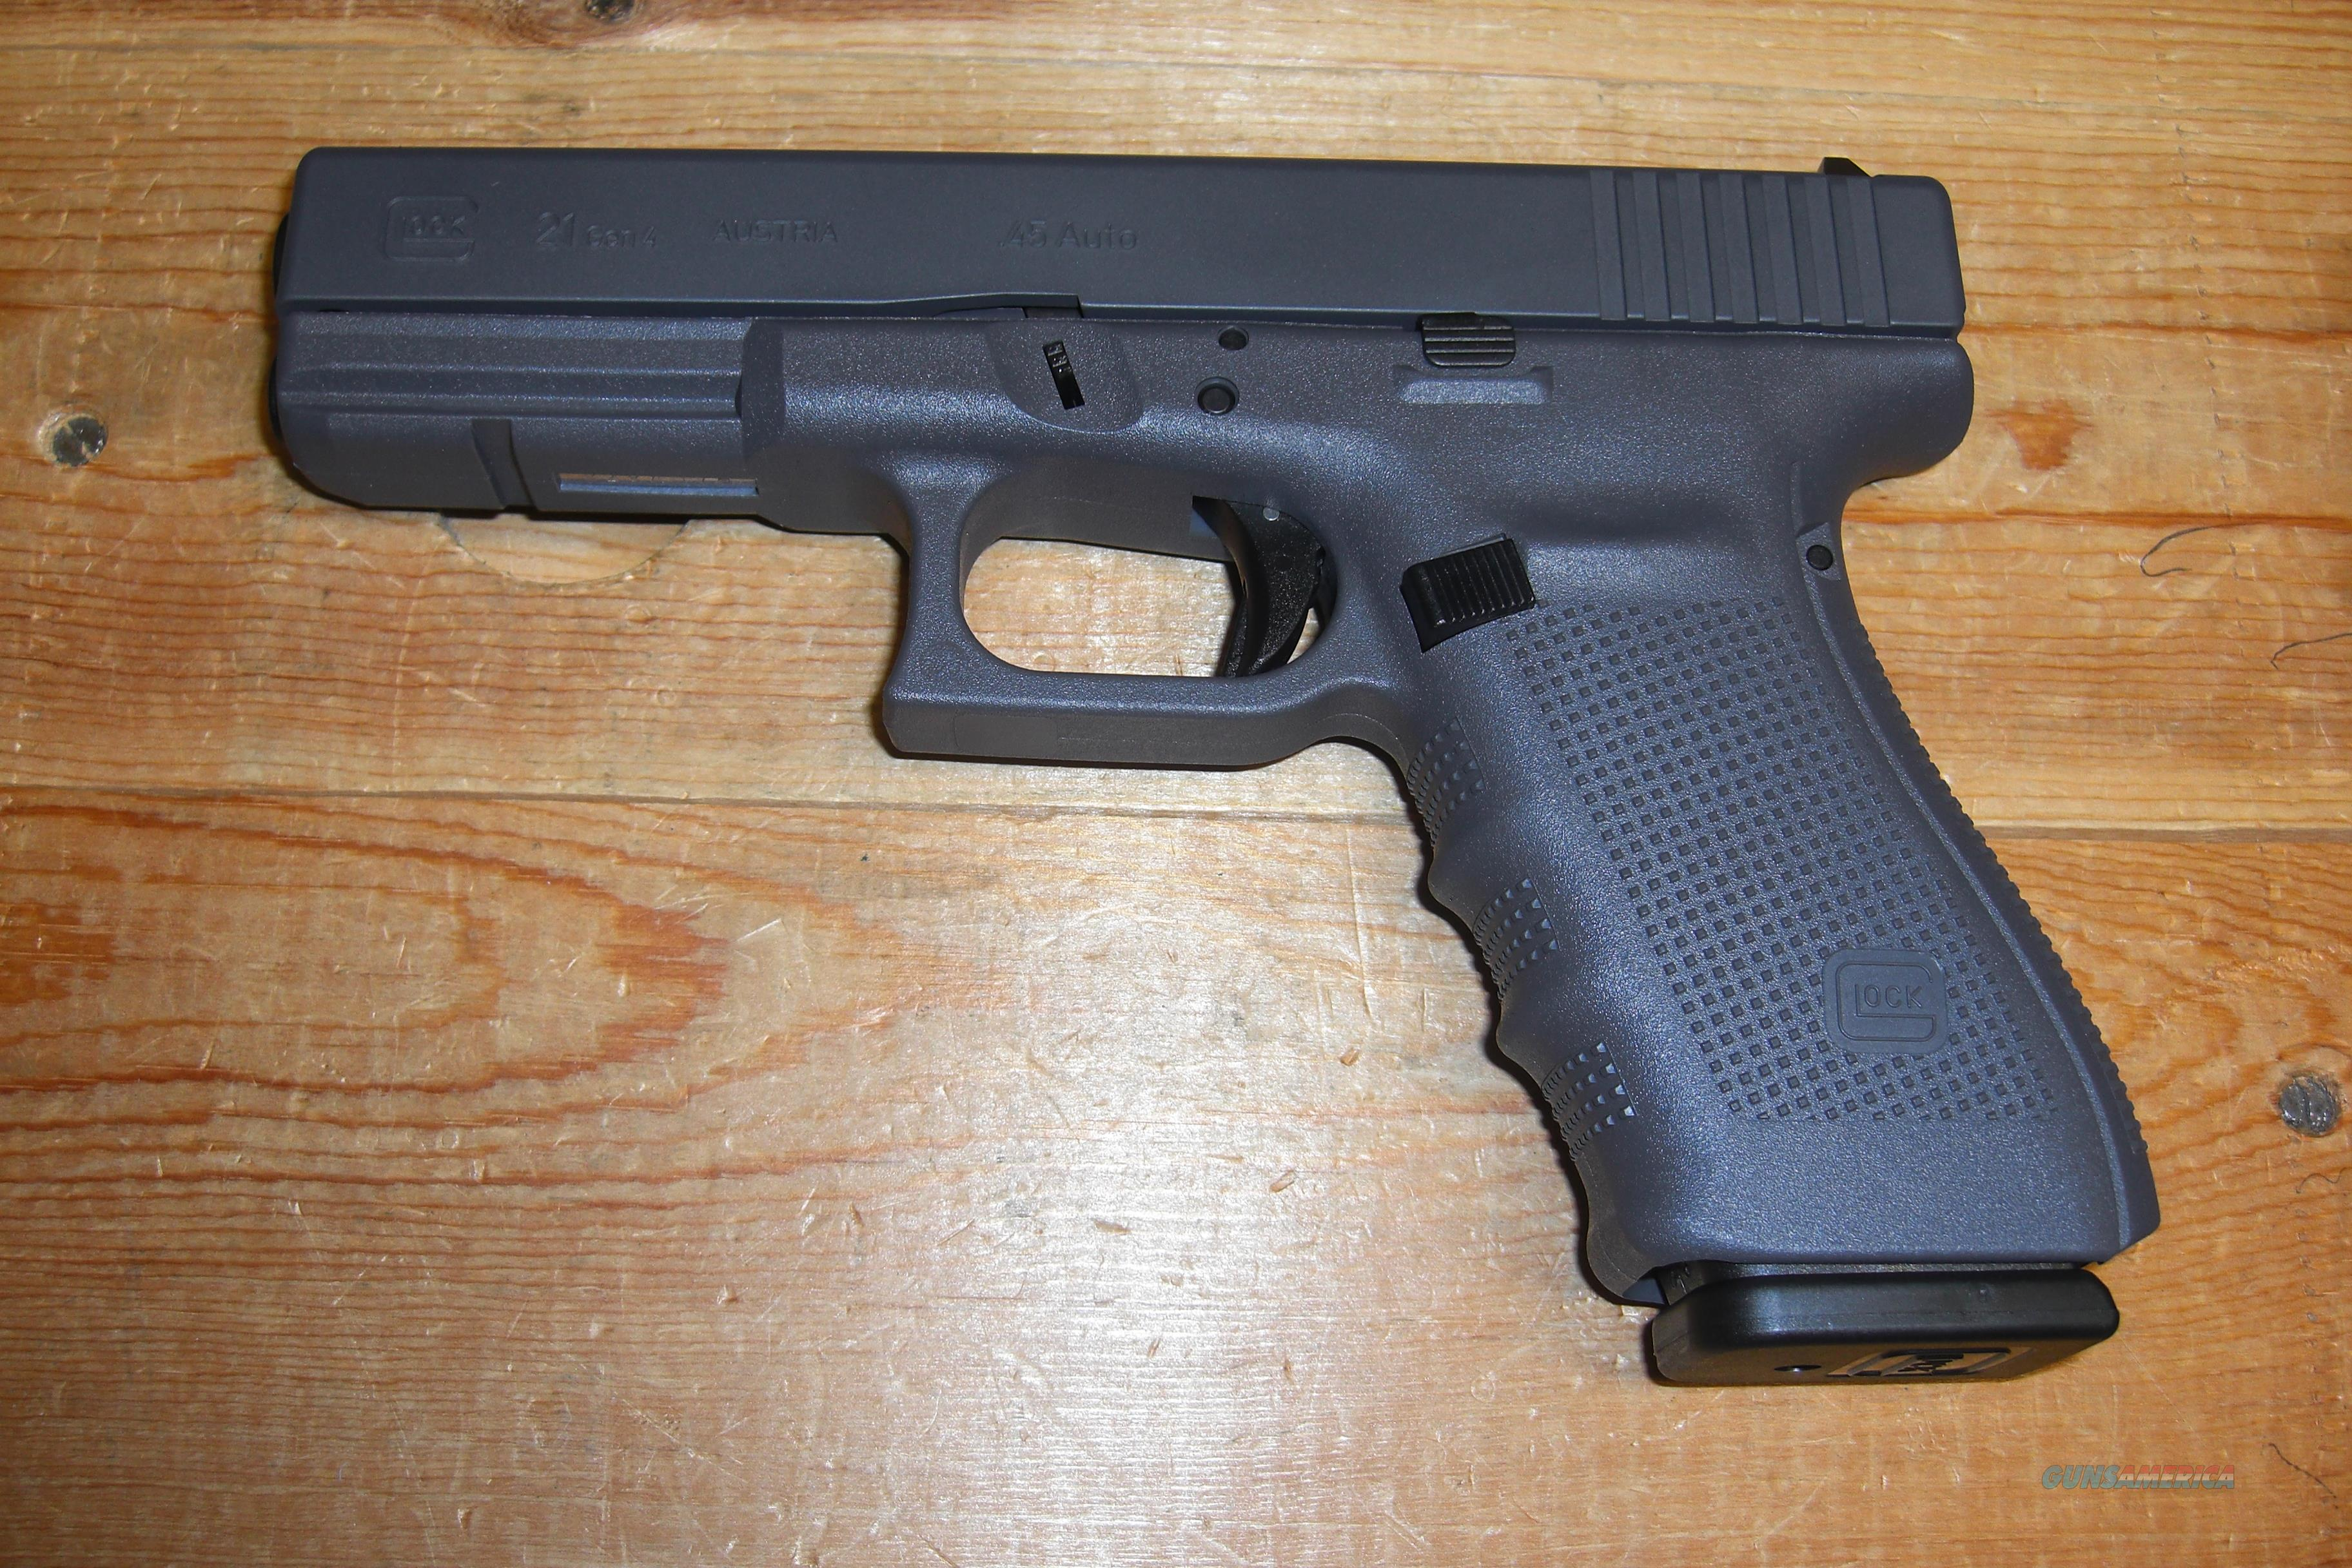 Glock 21 Gen 4 w/gray colored frame, 3 13 rd. m... for sale